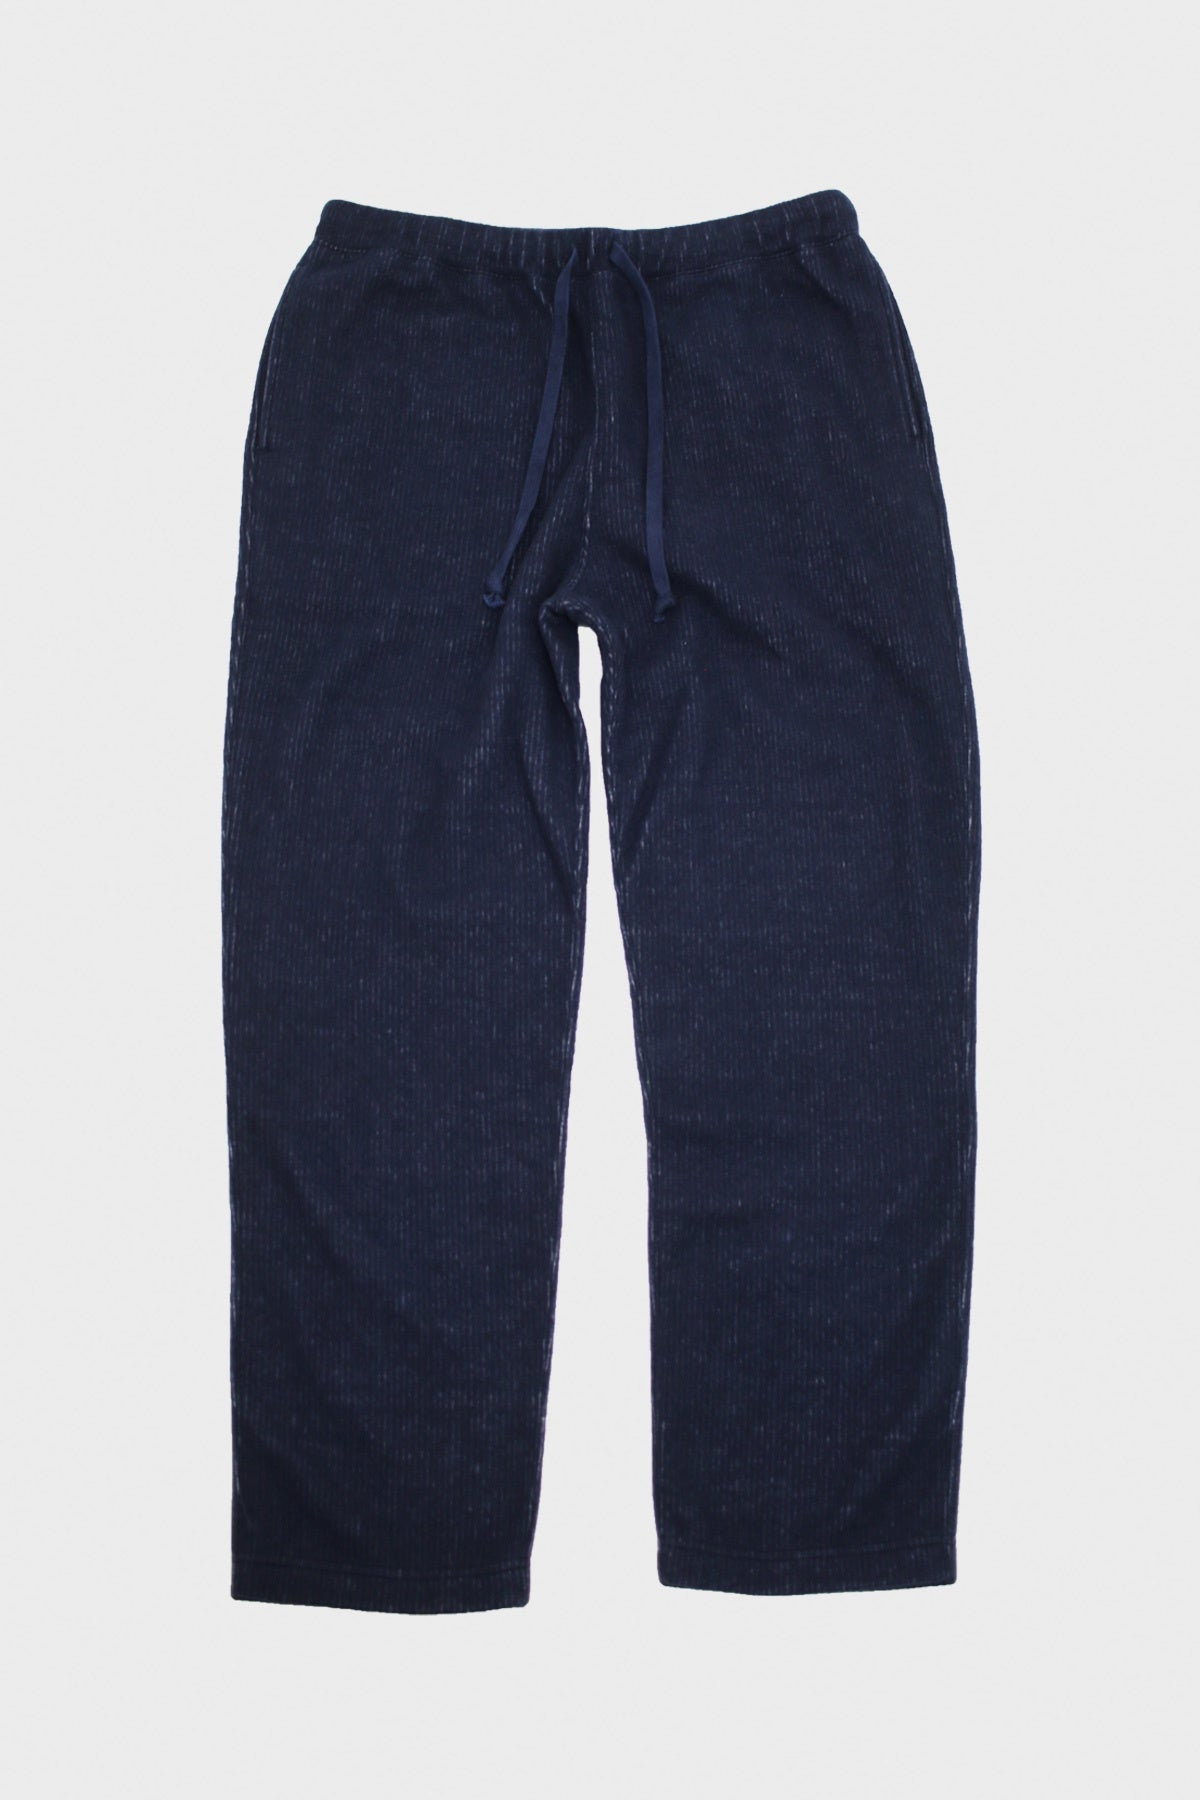 ts(s) - Slim Sweat Pants - Navy - Canoe Club